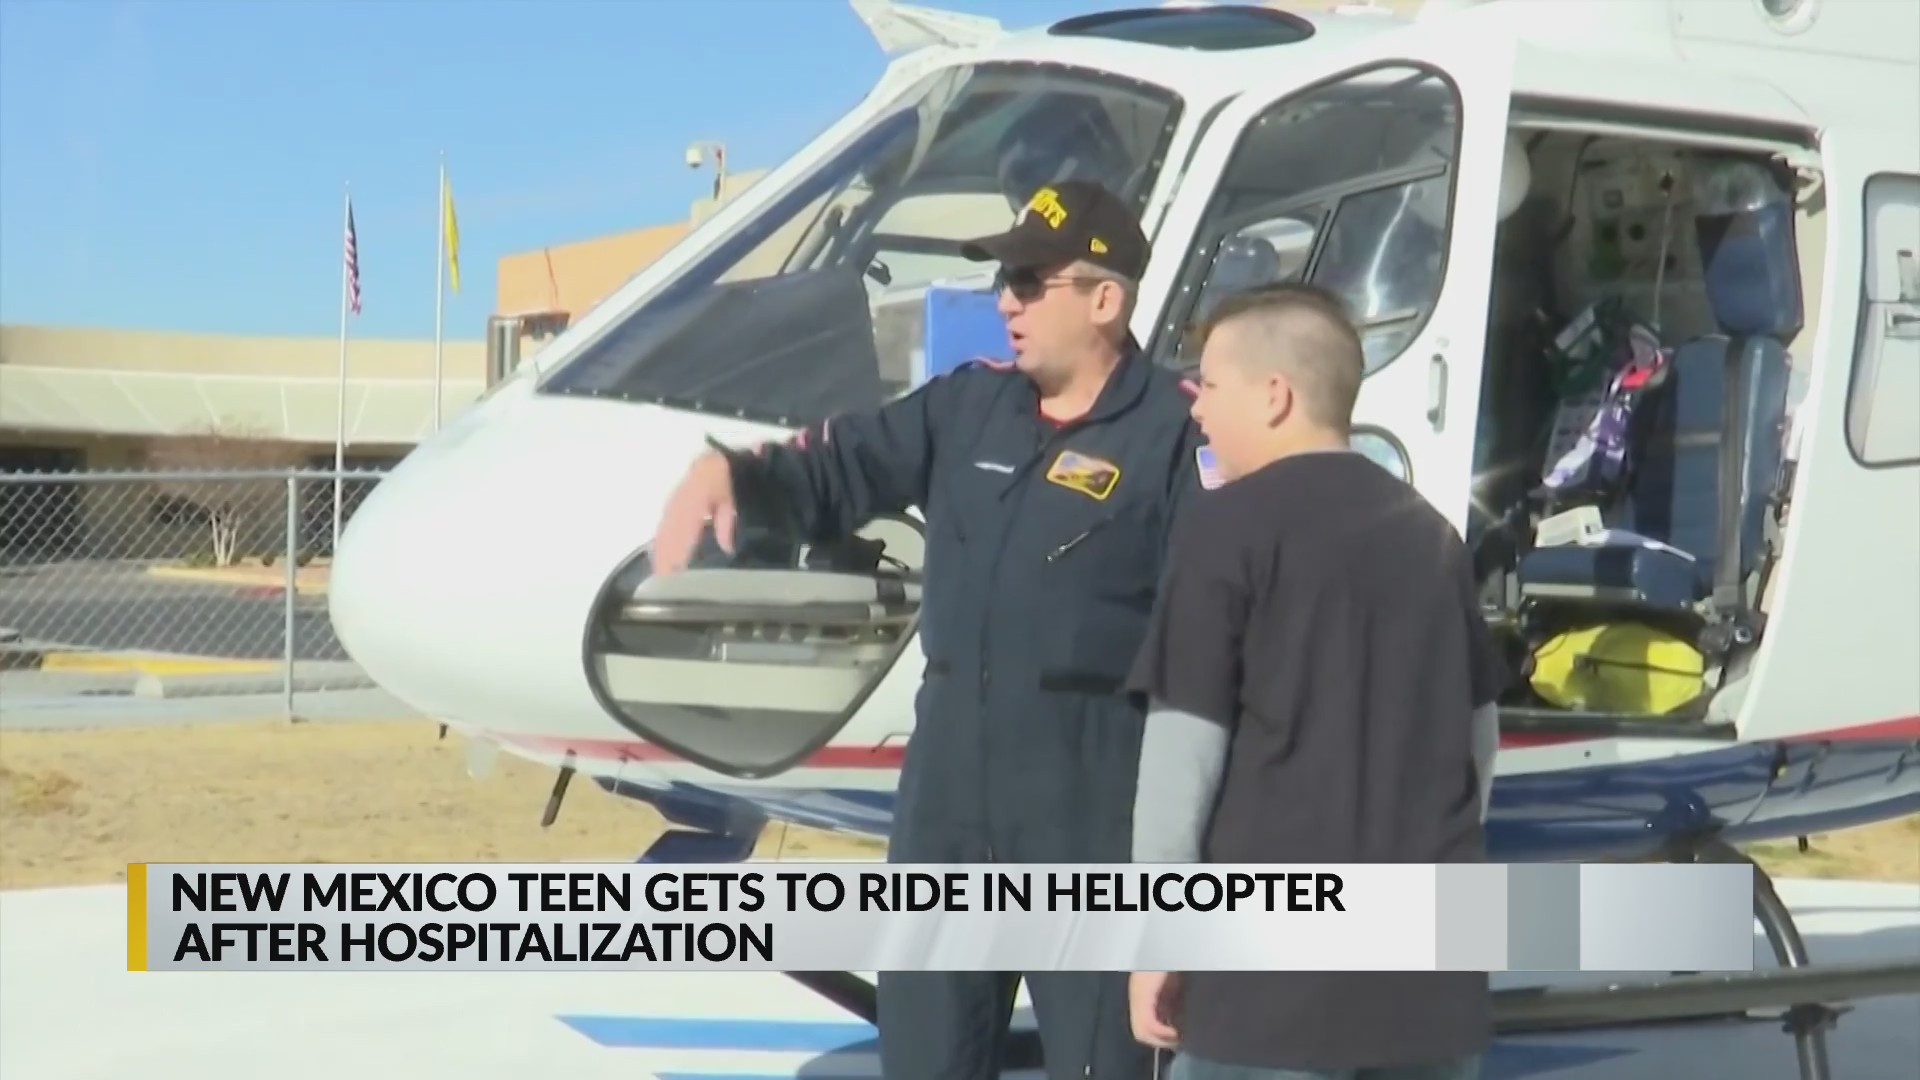 New Mexico teen rides in helicopter after hospitalization